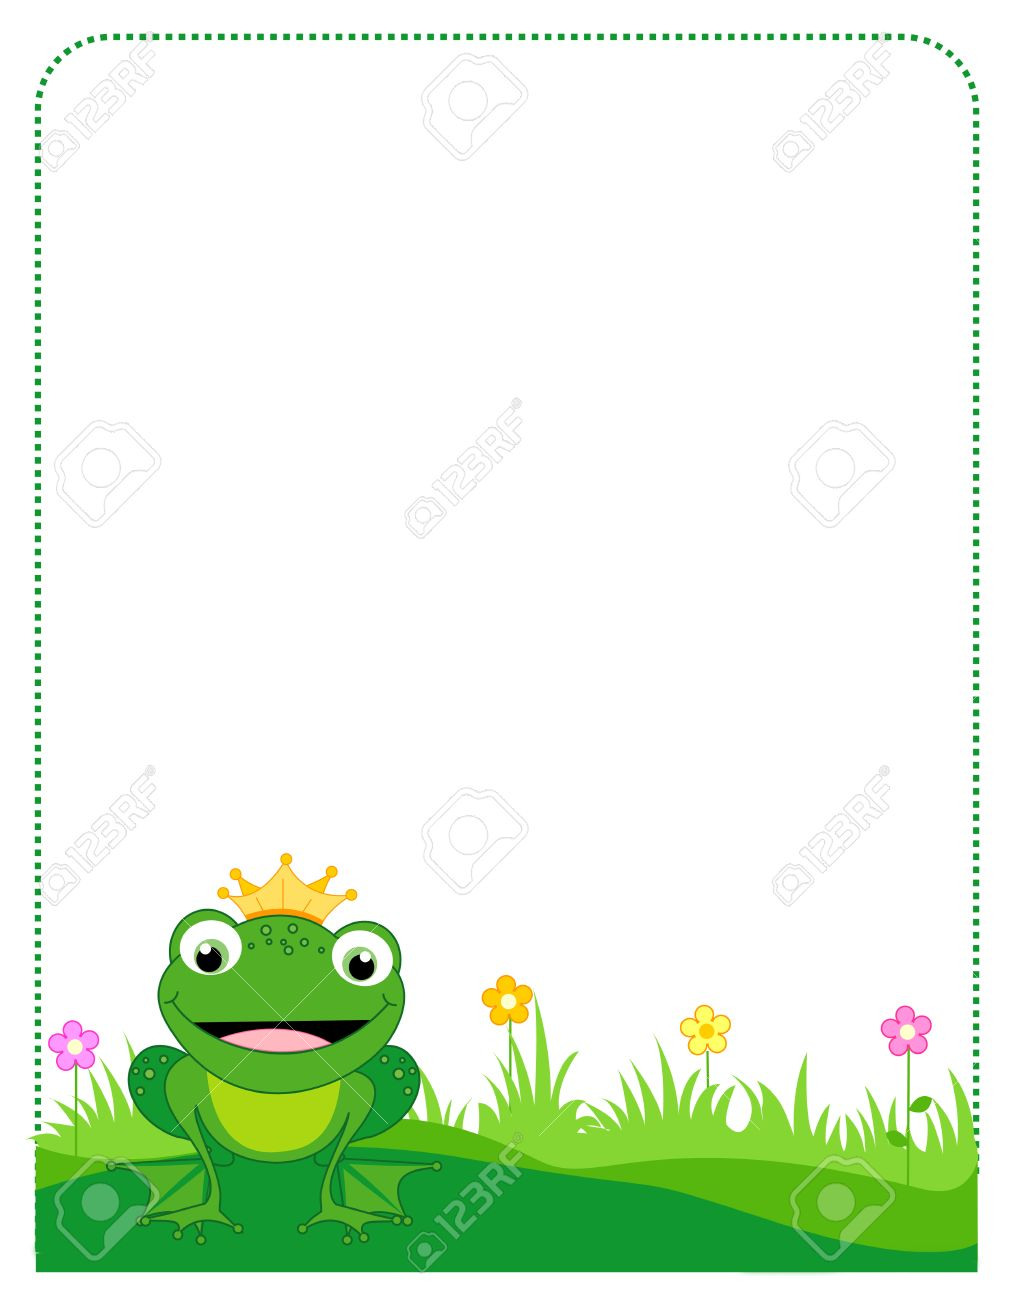 Cute Frog With A Golden Crown Border / Frame On White Background ...